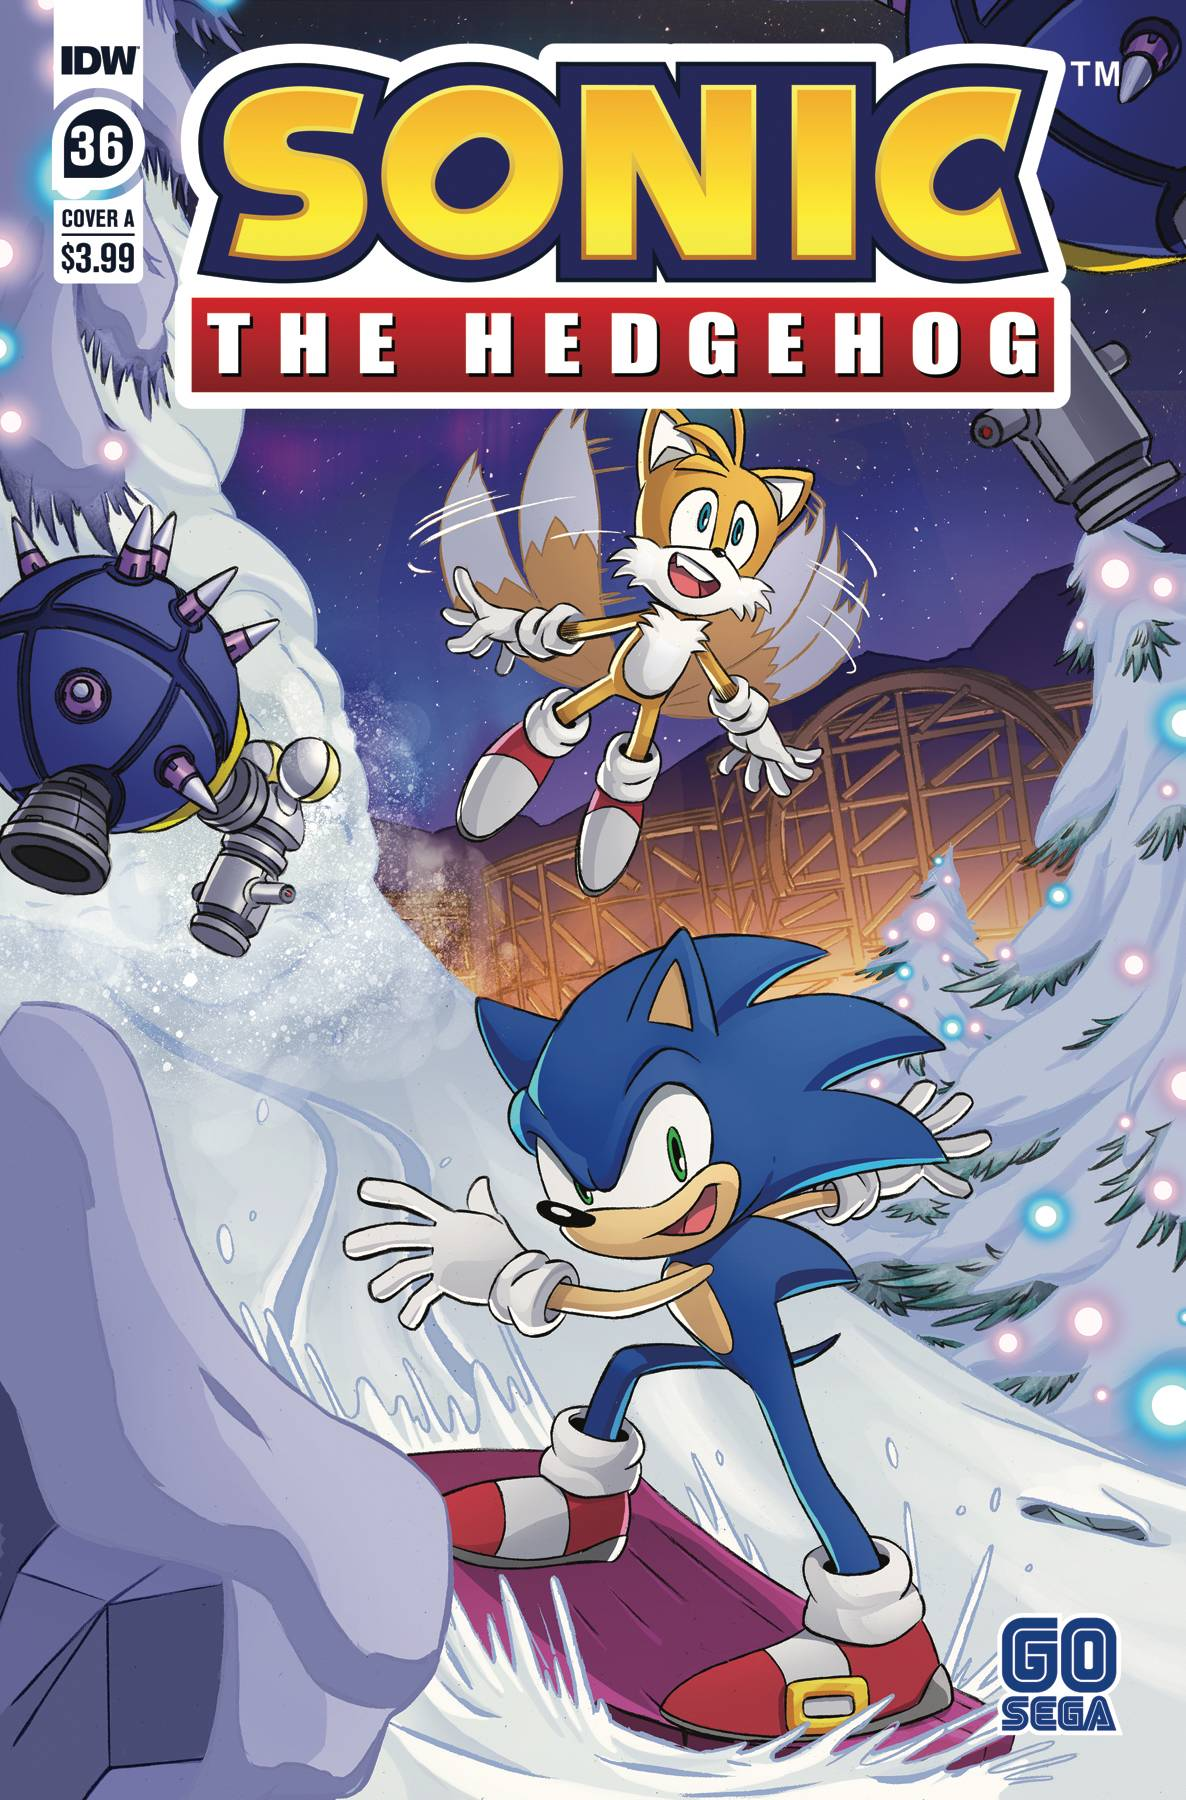 SONIC THE HEDGEHOG #36 CVR A SCHOENING